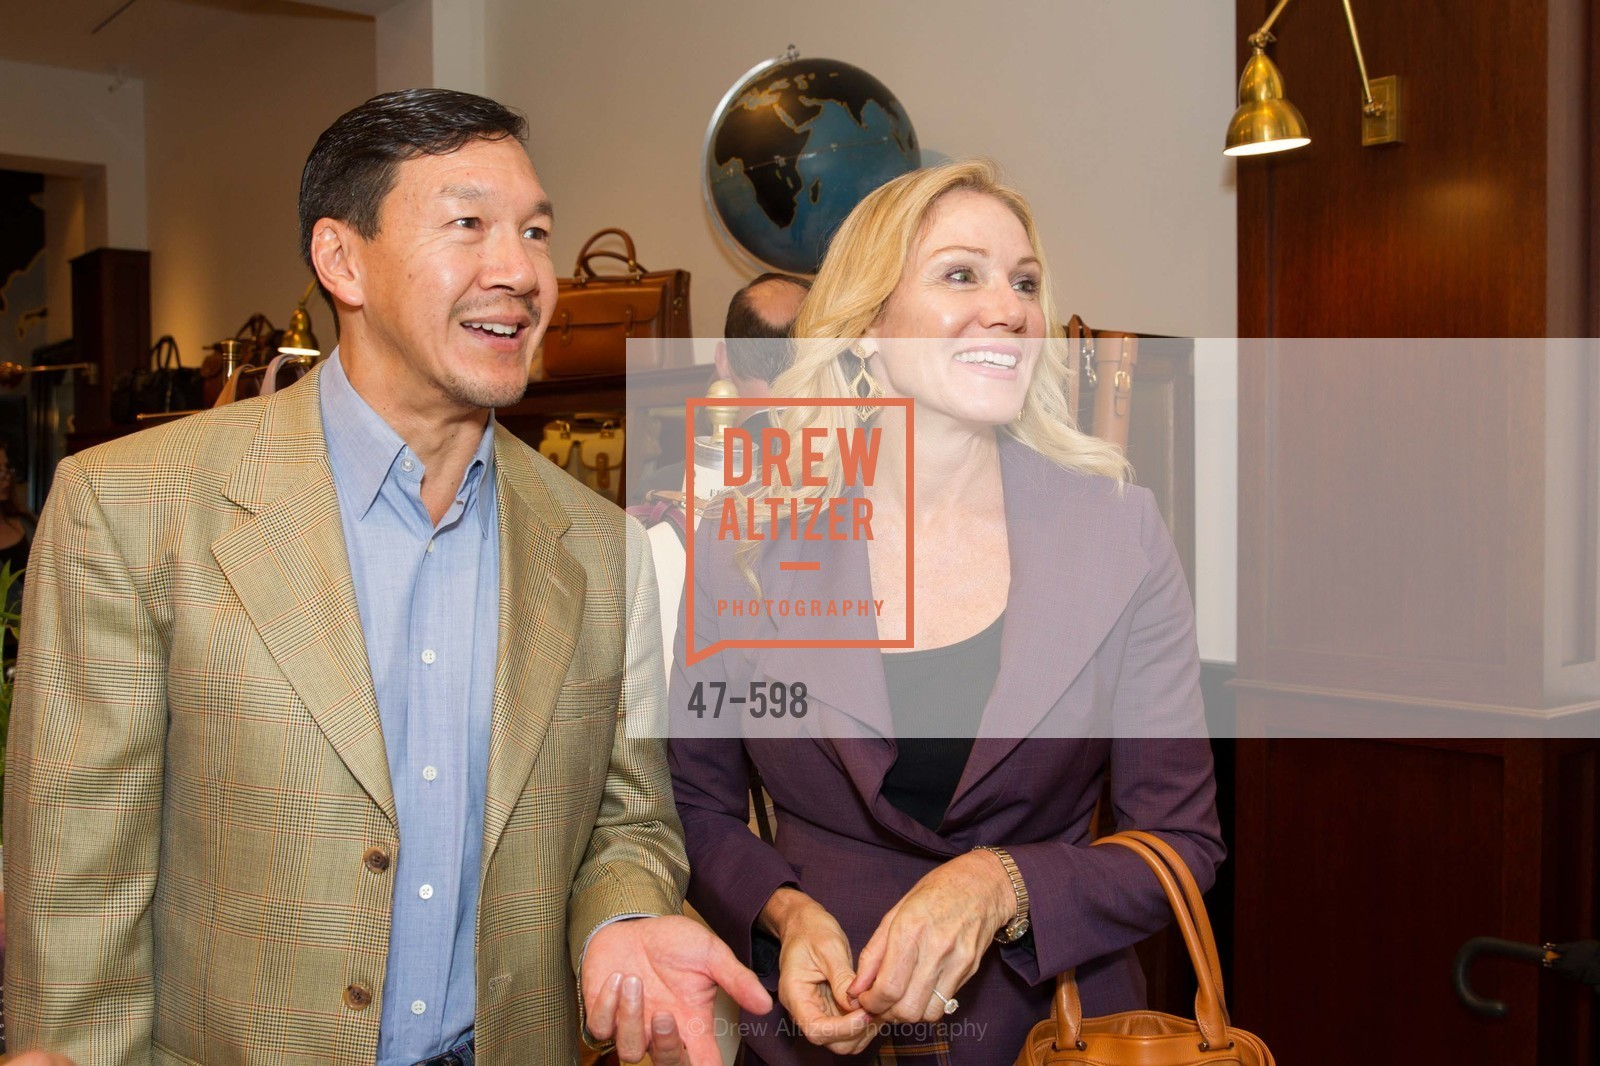 Tim Wu, Rosemary Baker, GHURKA FALL FASHION Press Preview Honoring the ZOO BOARD, US, October 7th, 2014,Drew Altizer, Drew Altizer Photography, full-service agency, private events, San Francisco photographer, photographer california